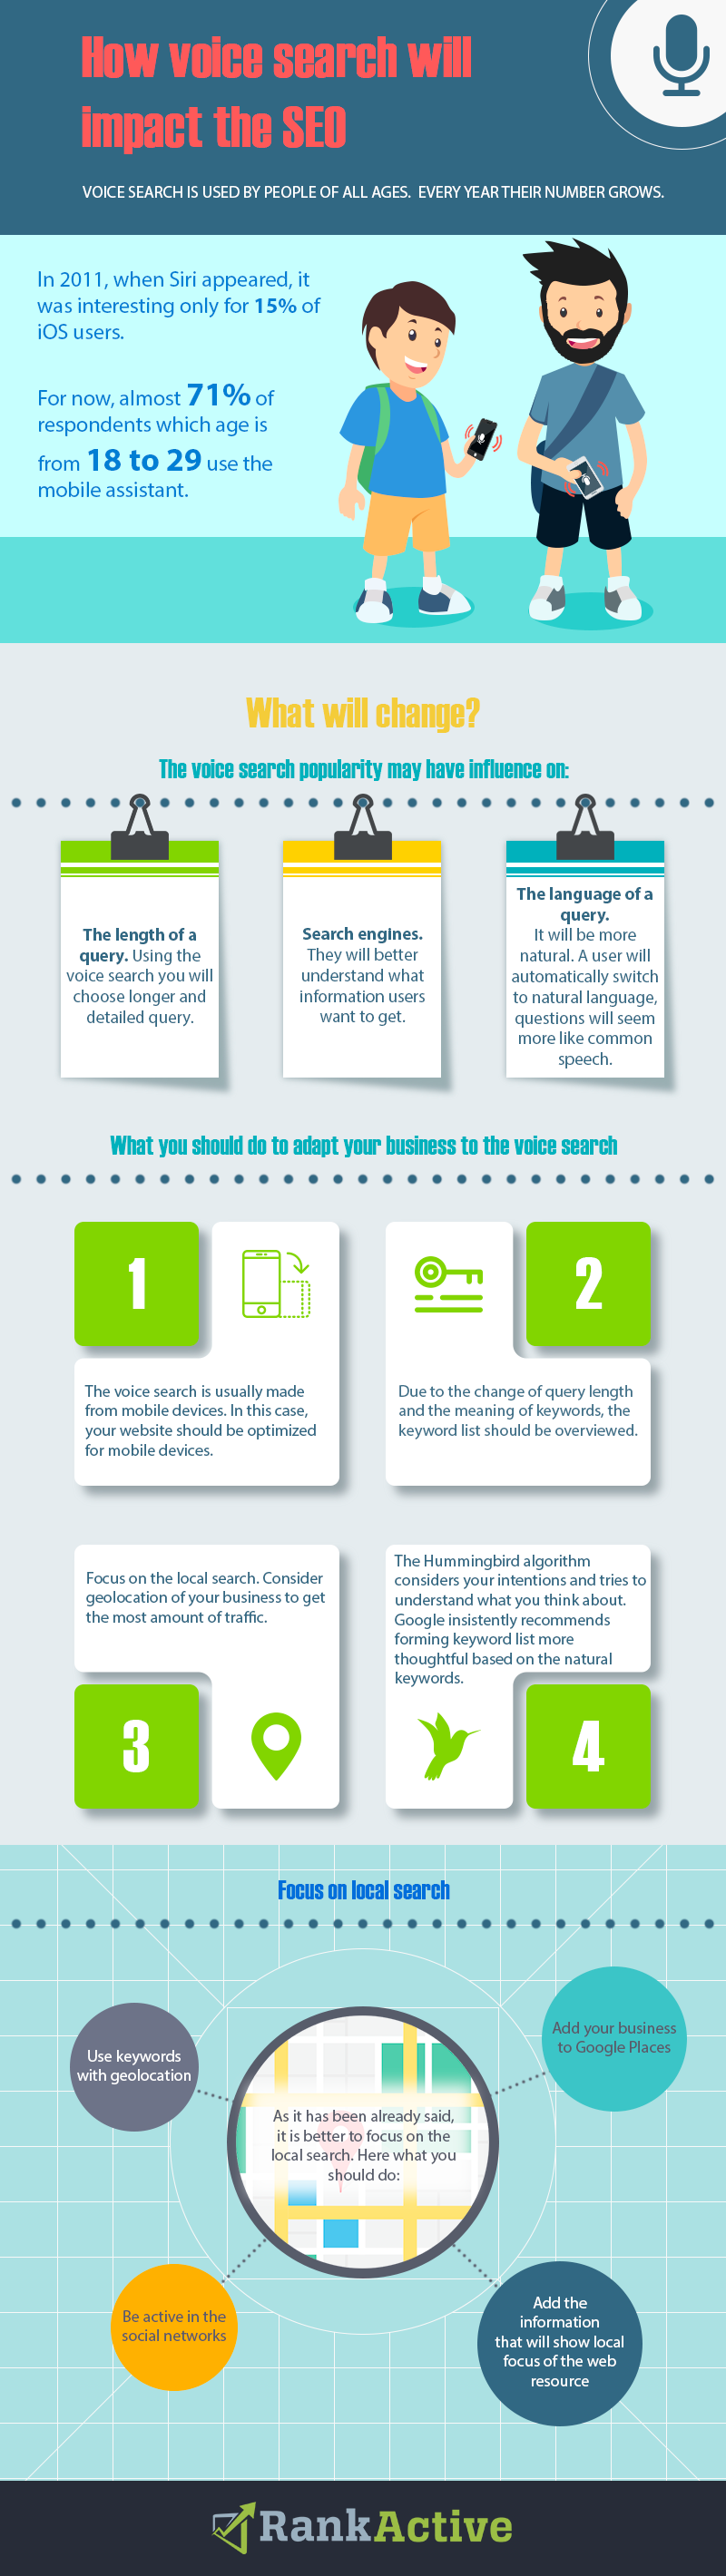 how-voice-search-will-impact-the-seo